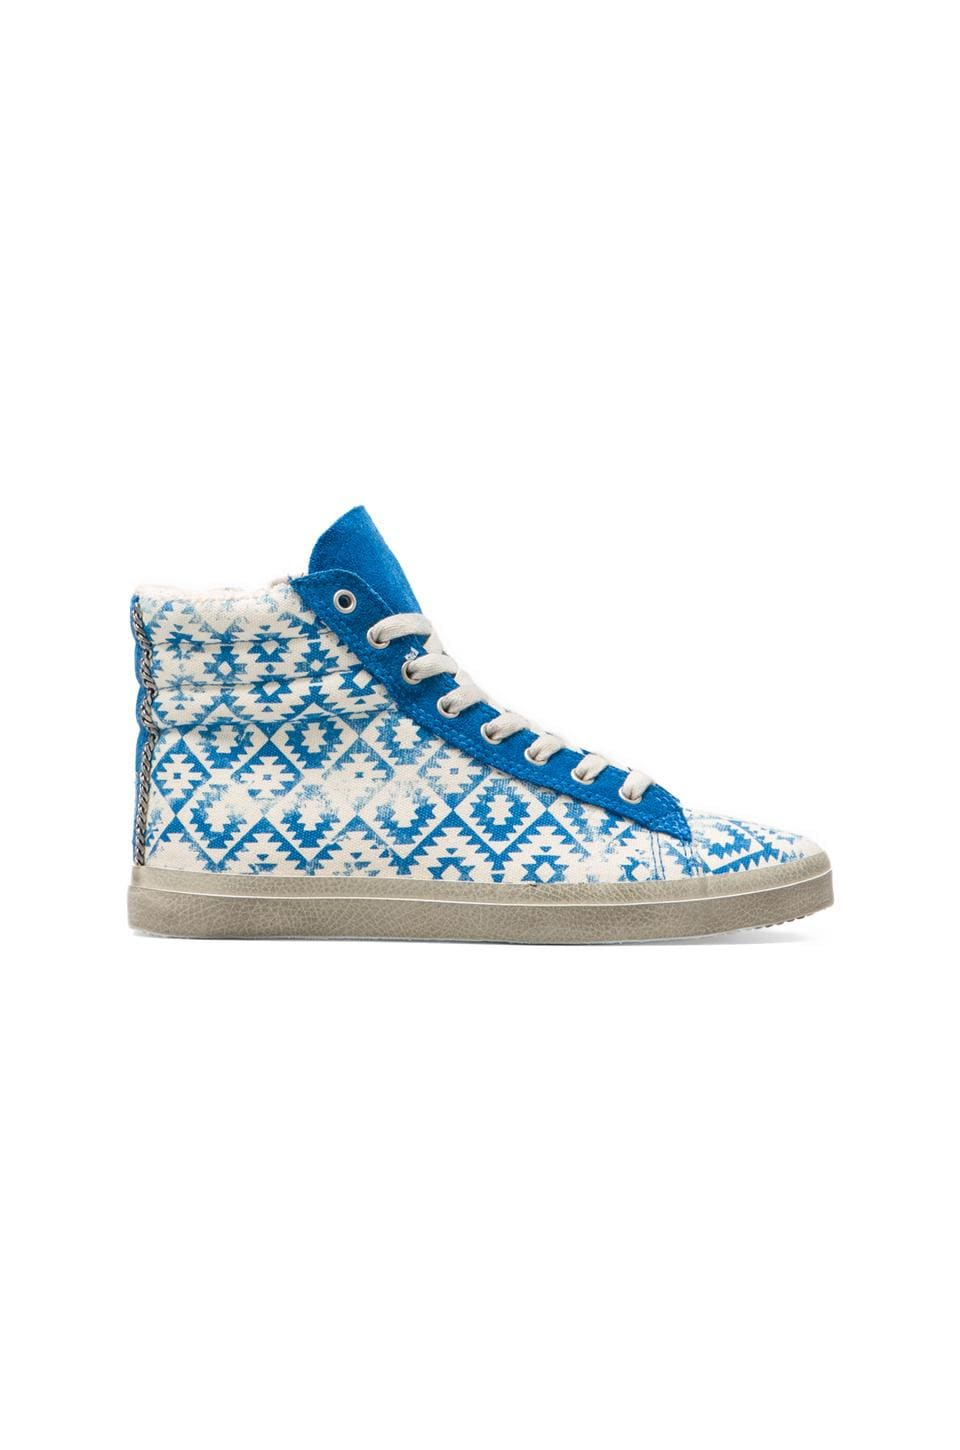 KIM & ZOZI Gypster Sneaker in Blue